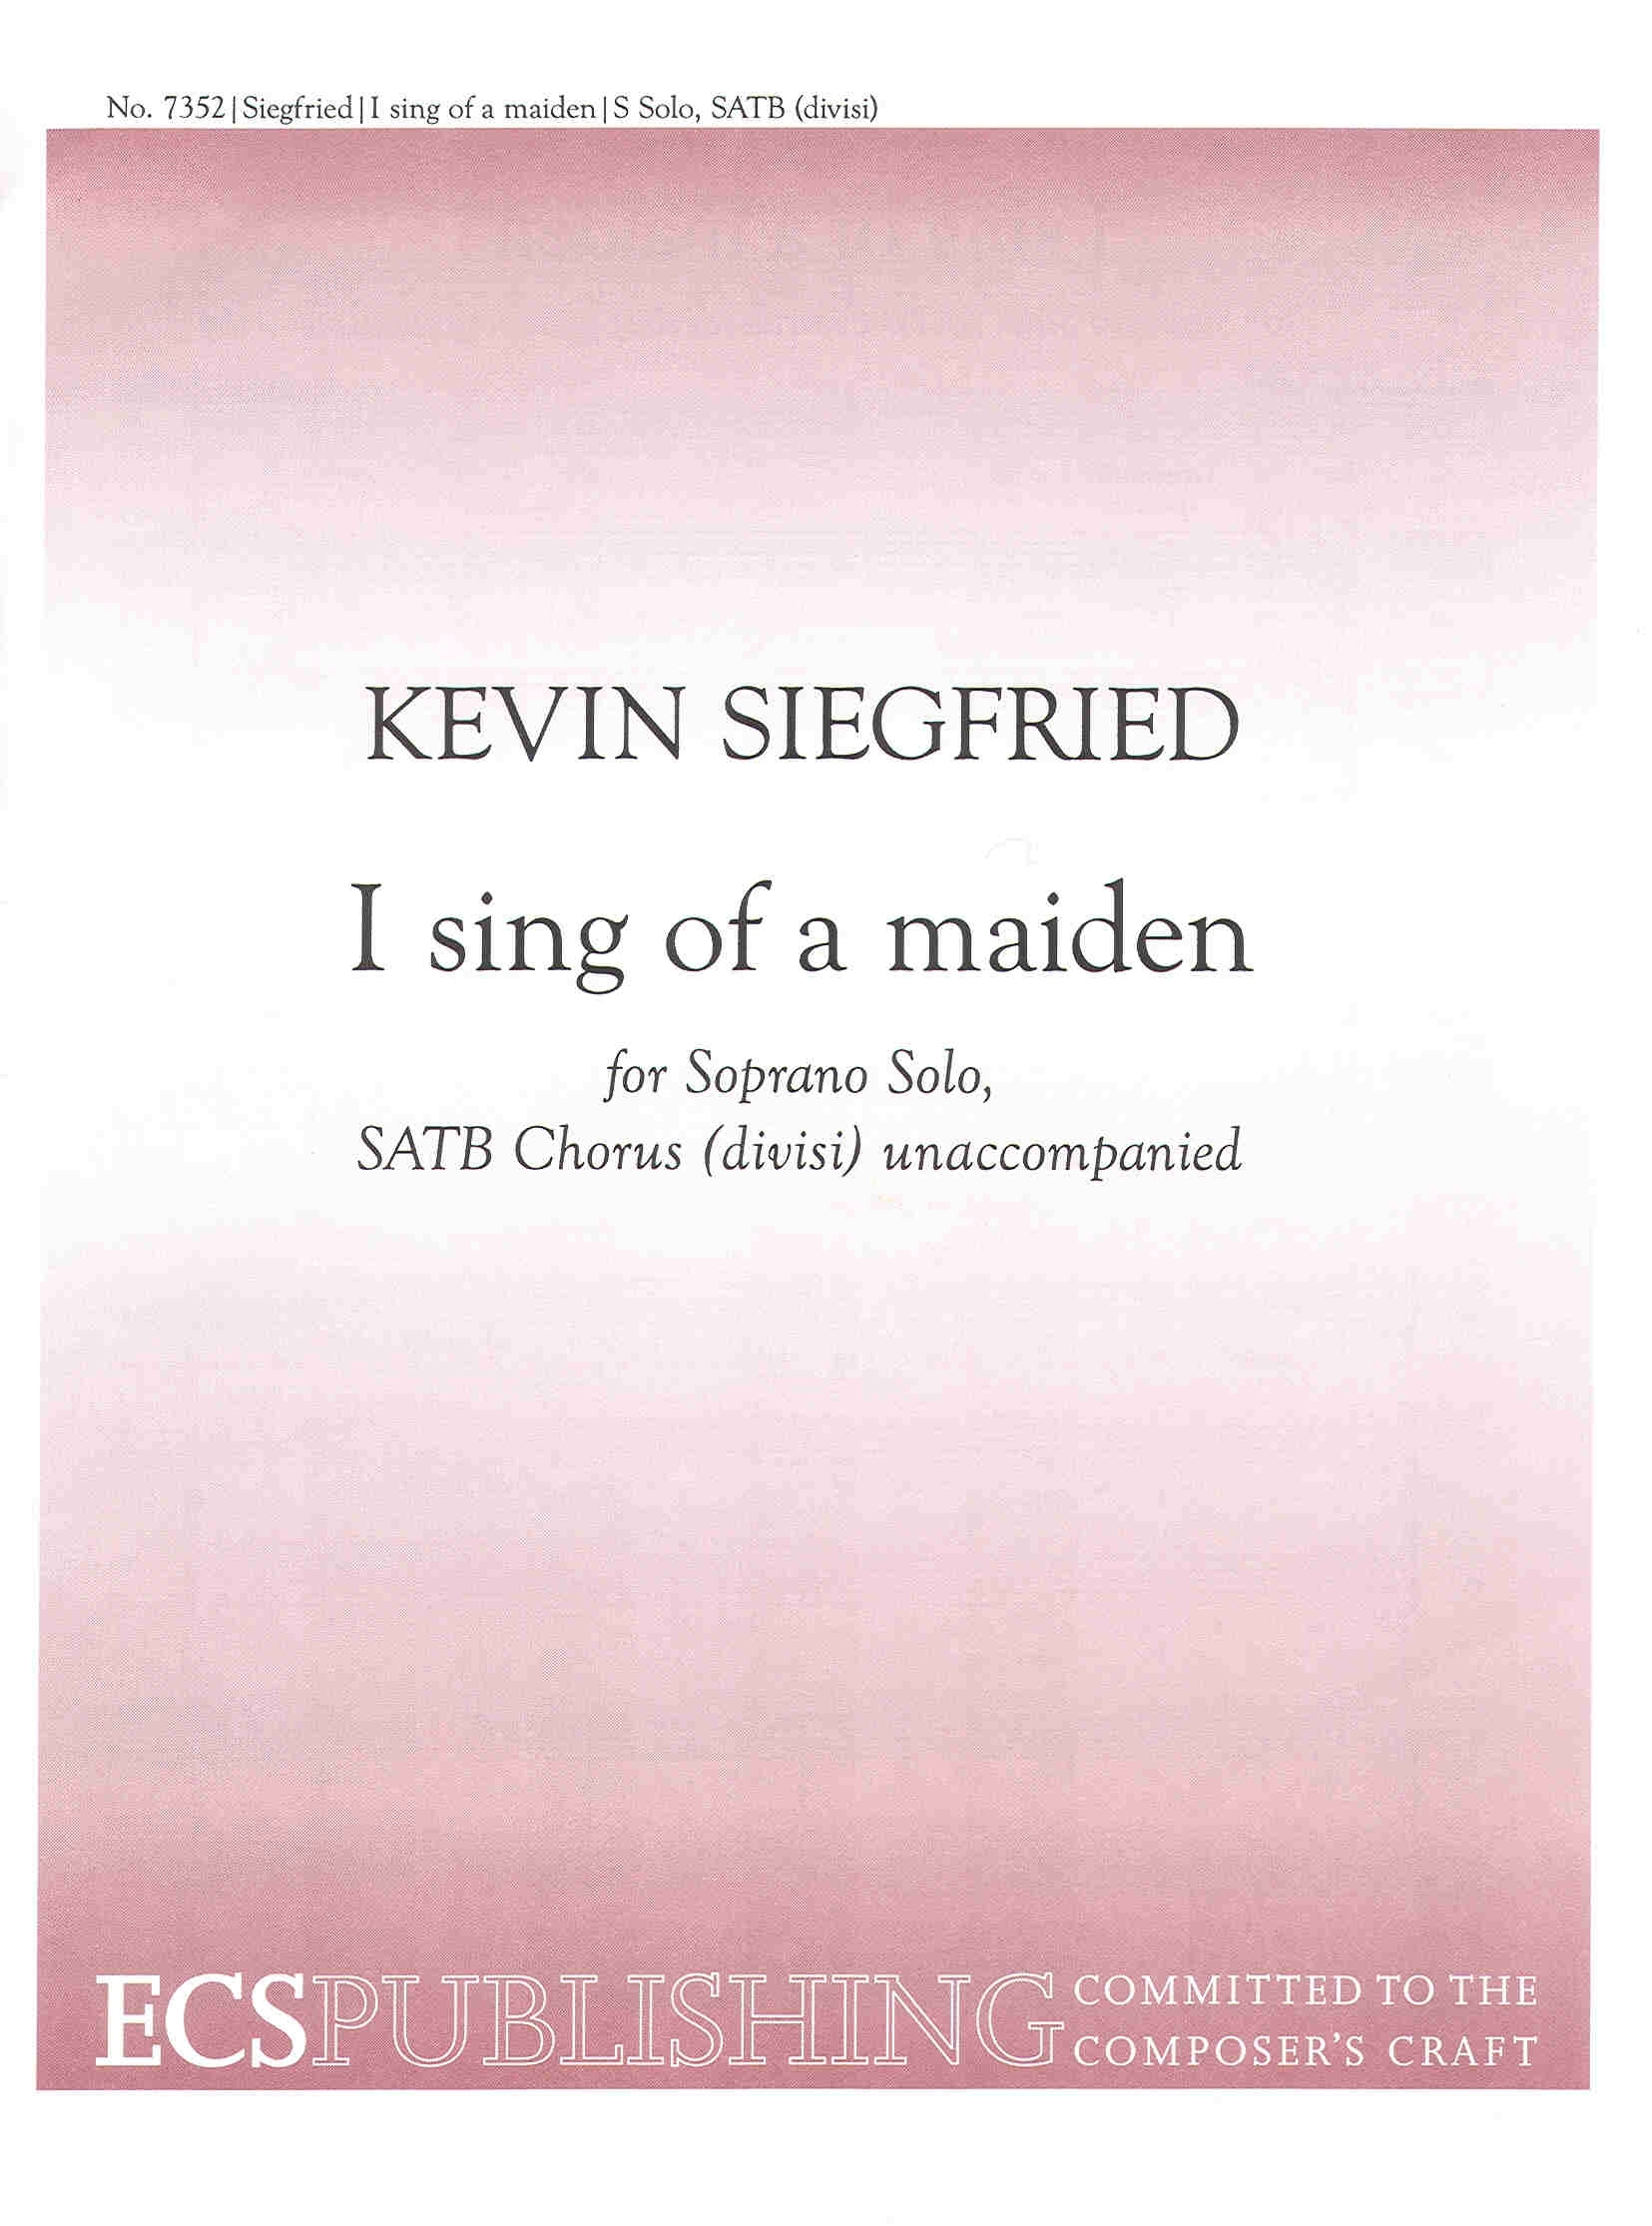 I sing of a maiden